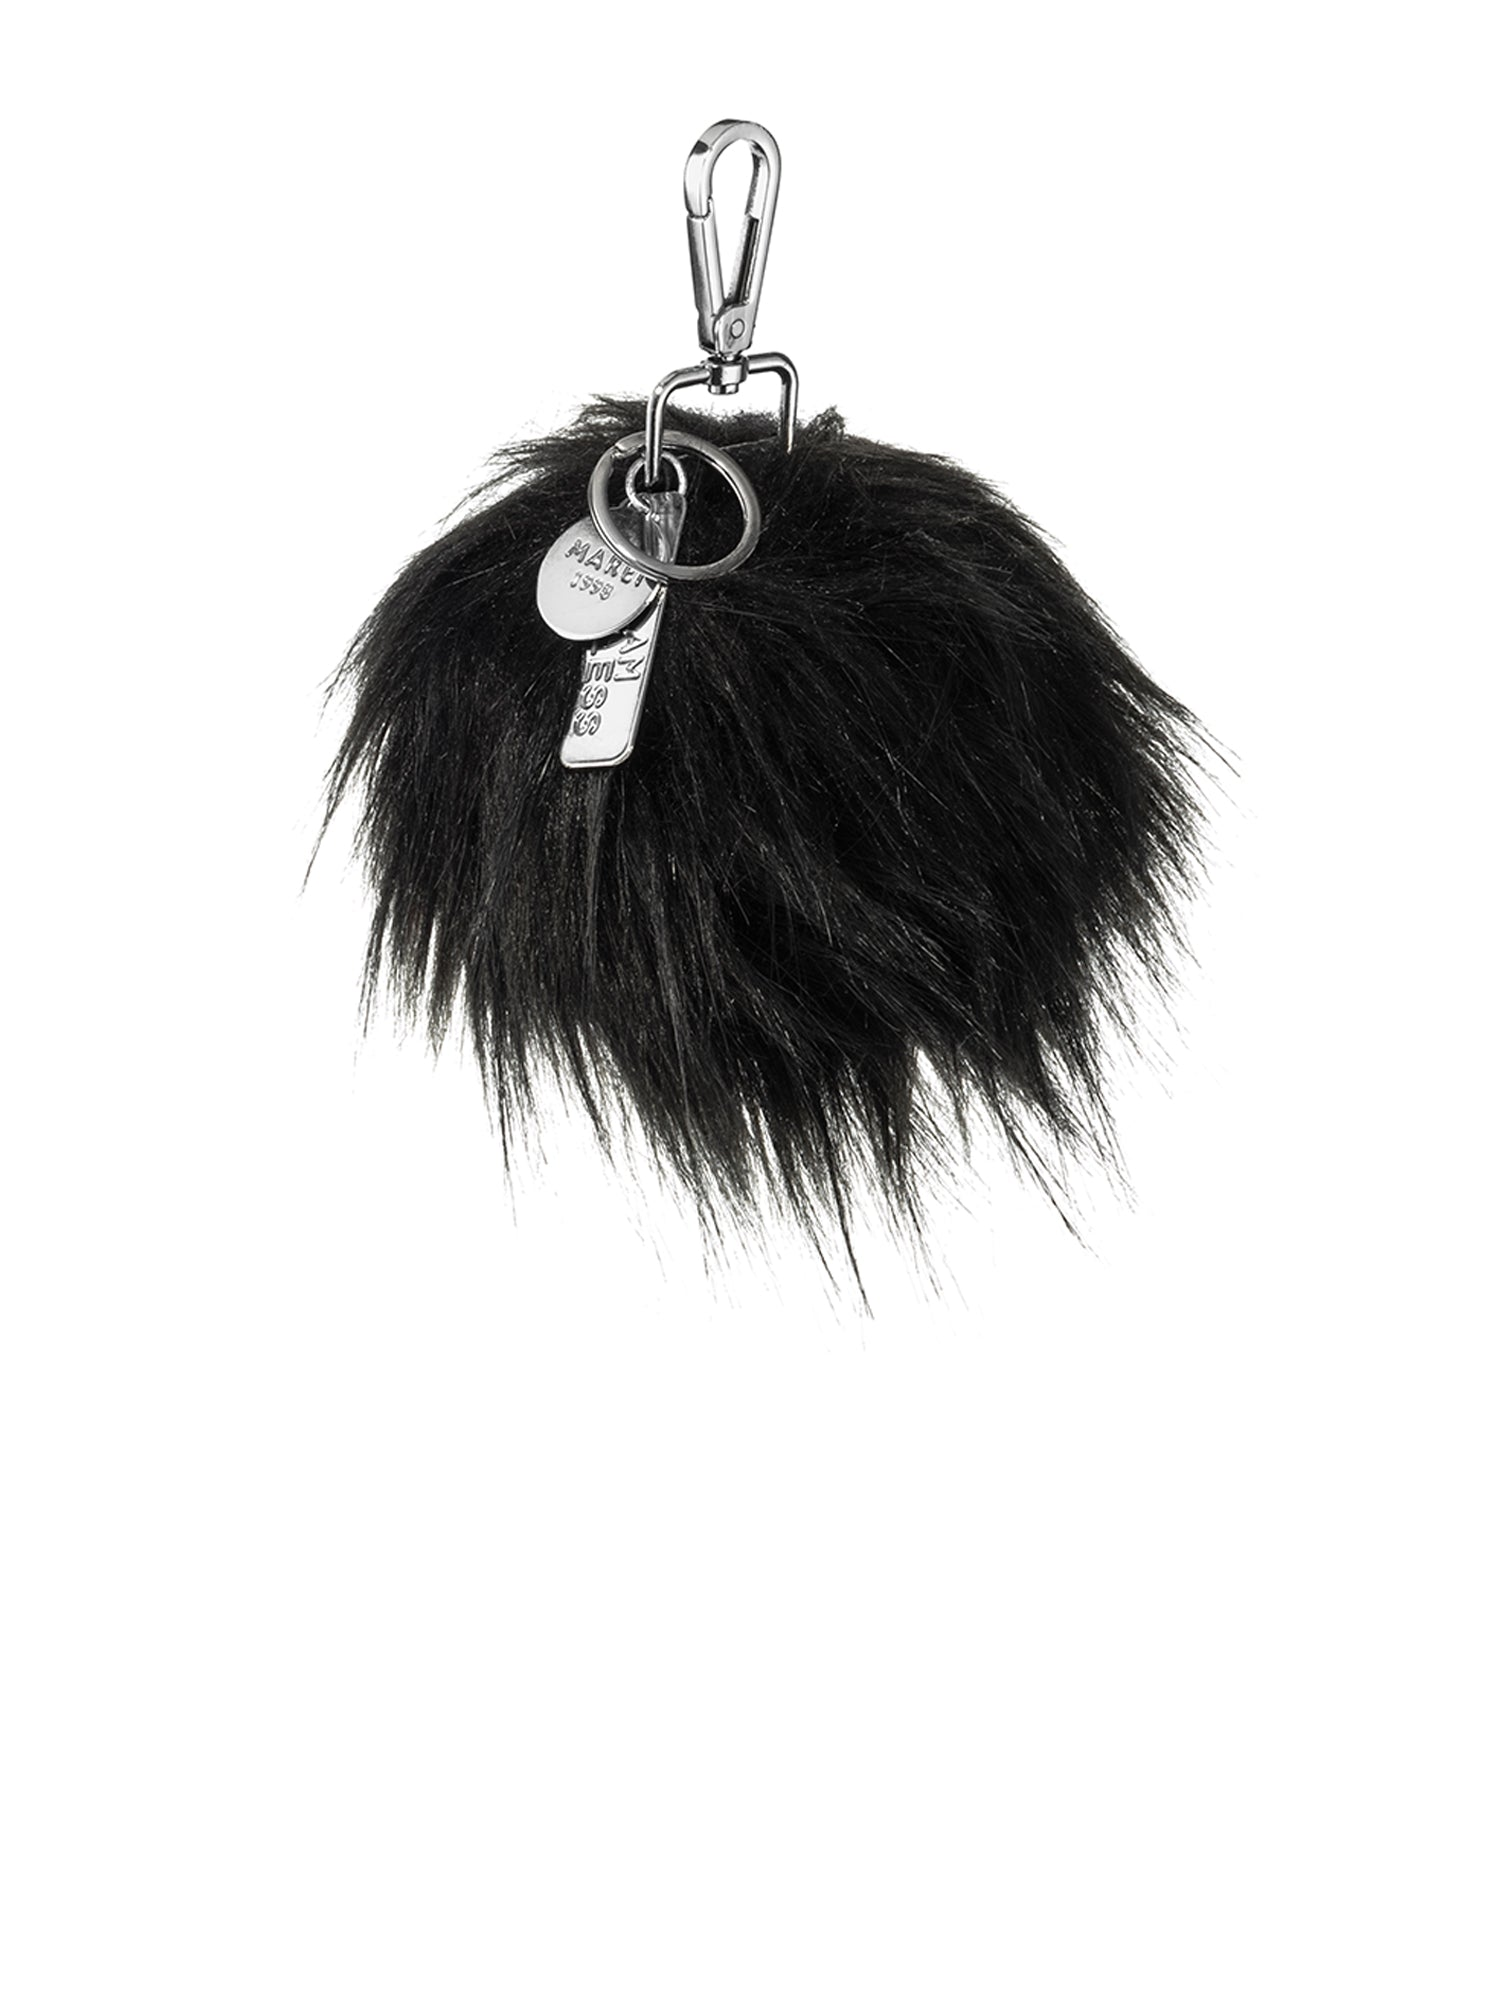 A Packshot Of Marei1998's FauxPom Bag Charm In Black Color. Featuring Nickle Metal Clip And Customized Marei1998 Logo Plates. Perfect As A Keyring Or Charm. Front View.